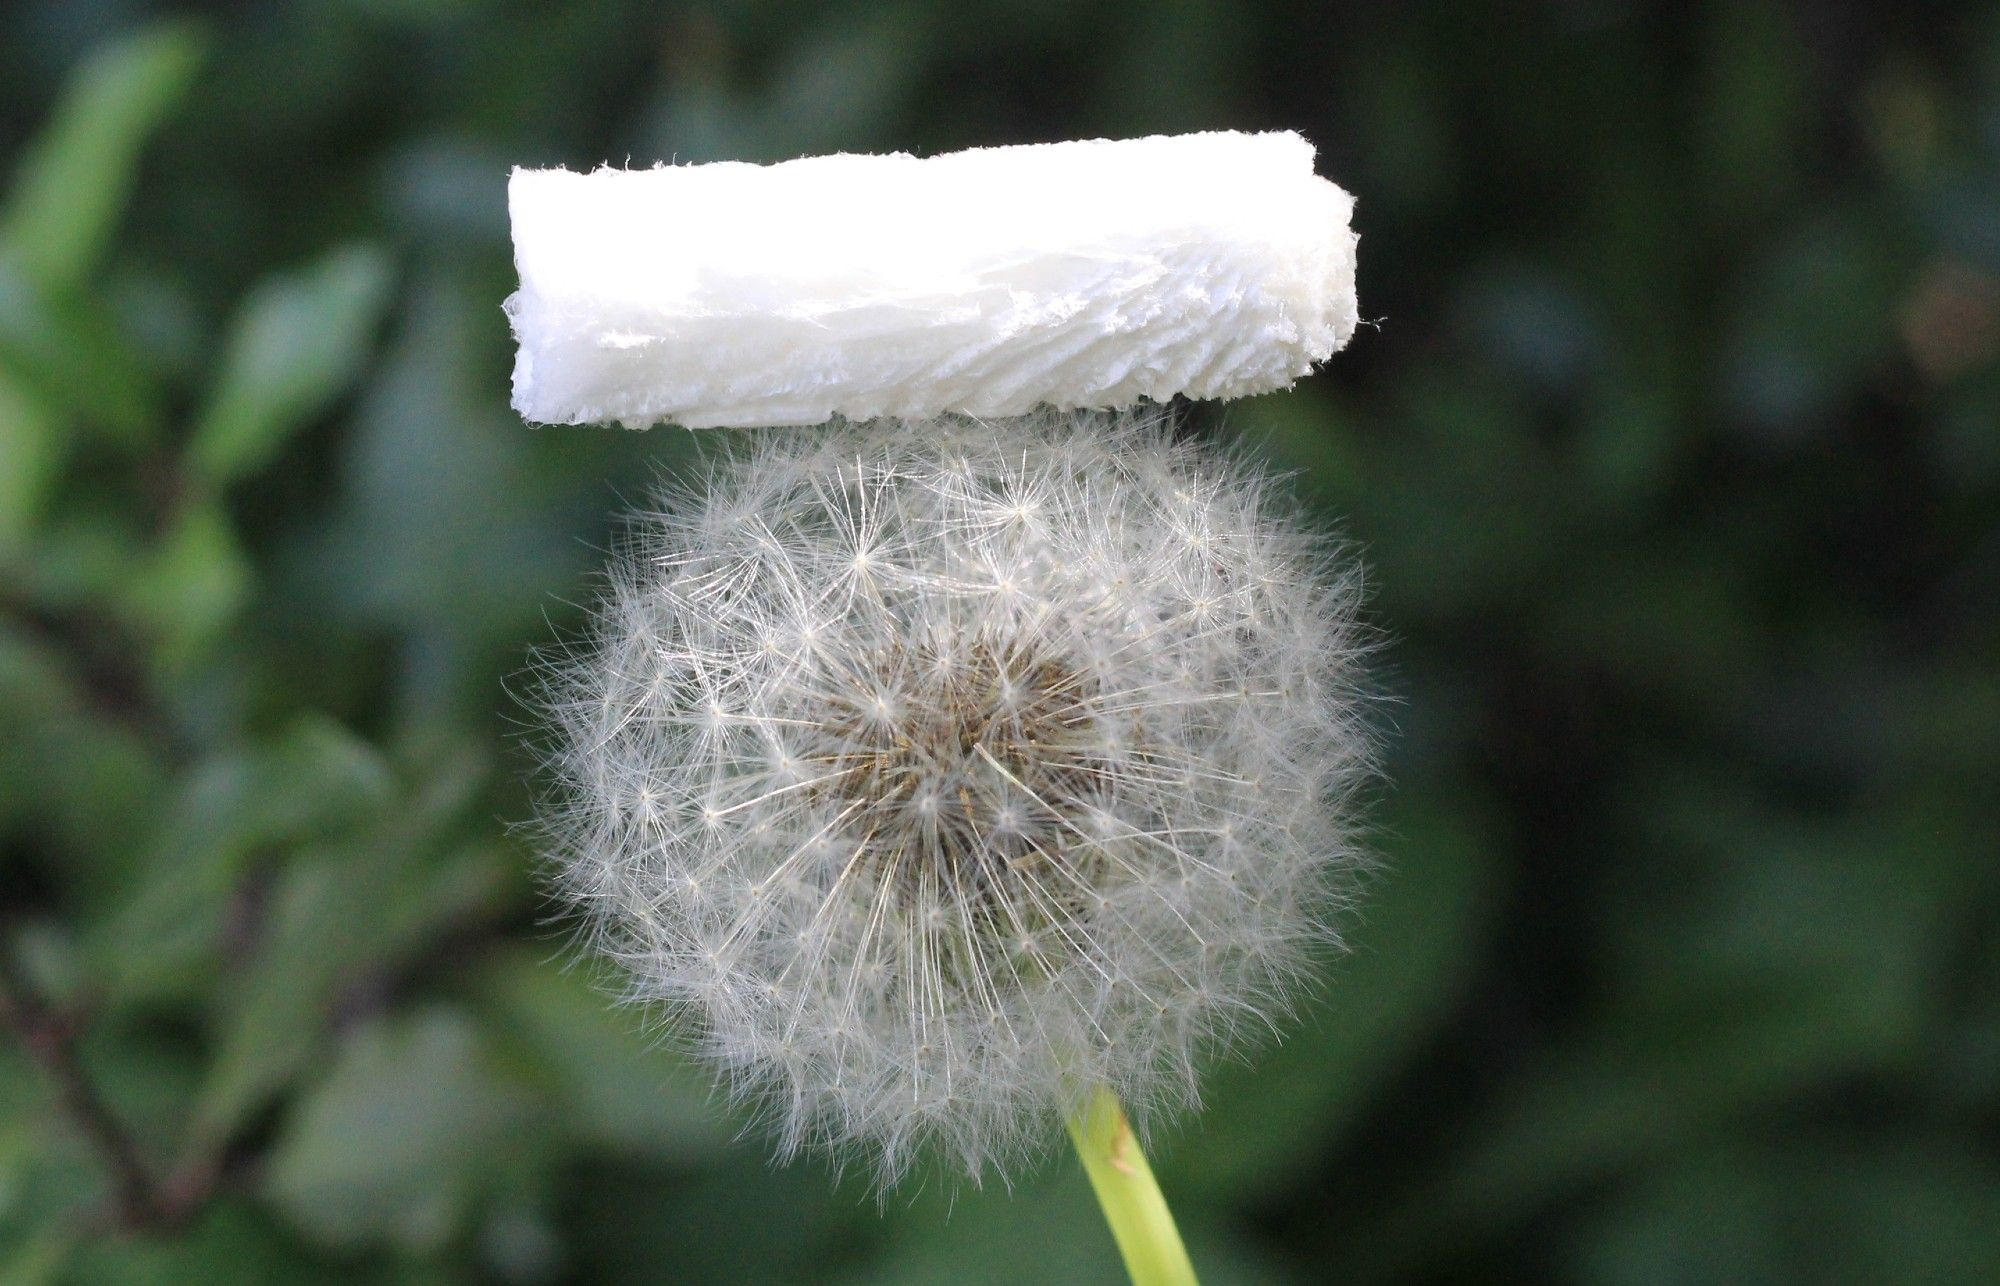 A newly invented white fluffy-looking material sits lightly atop a dandelion flower.